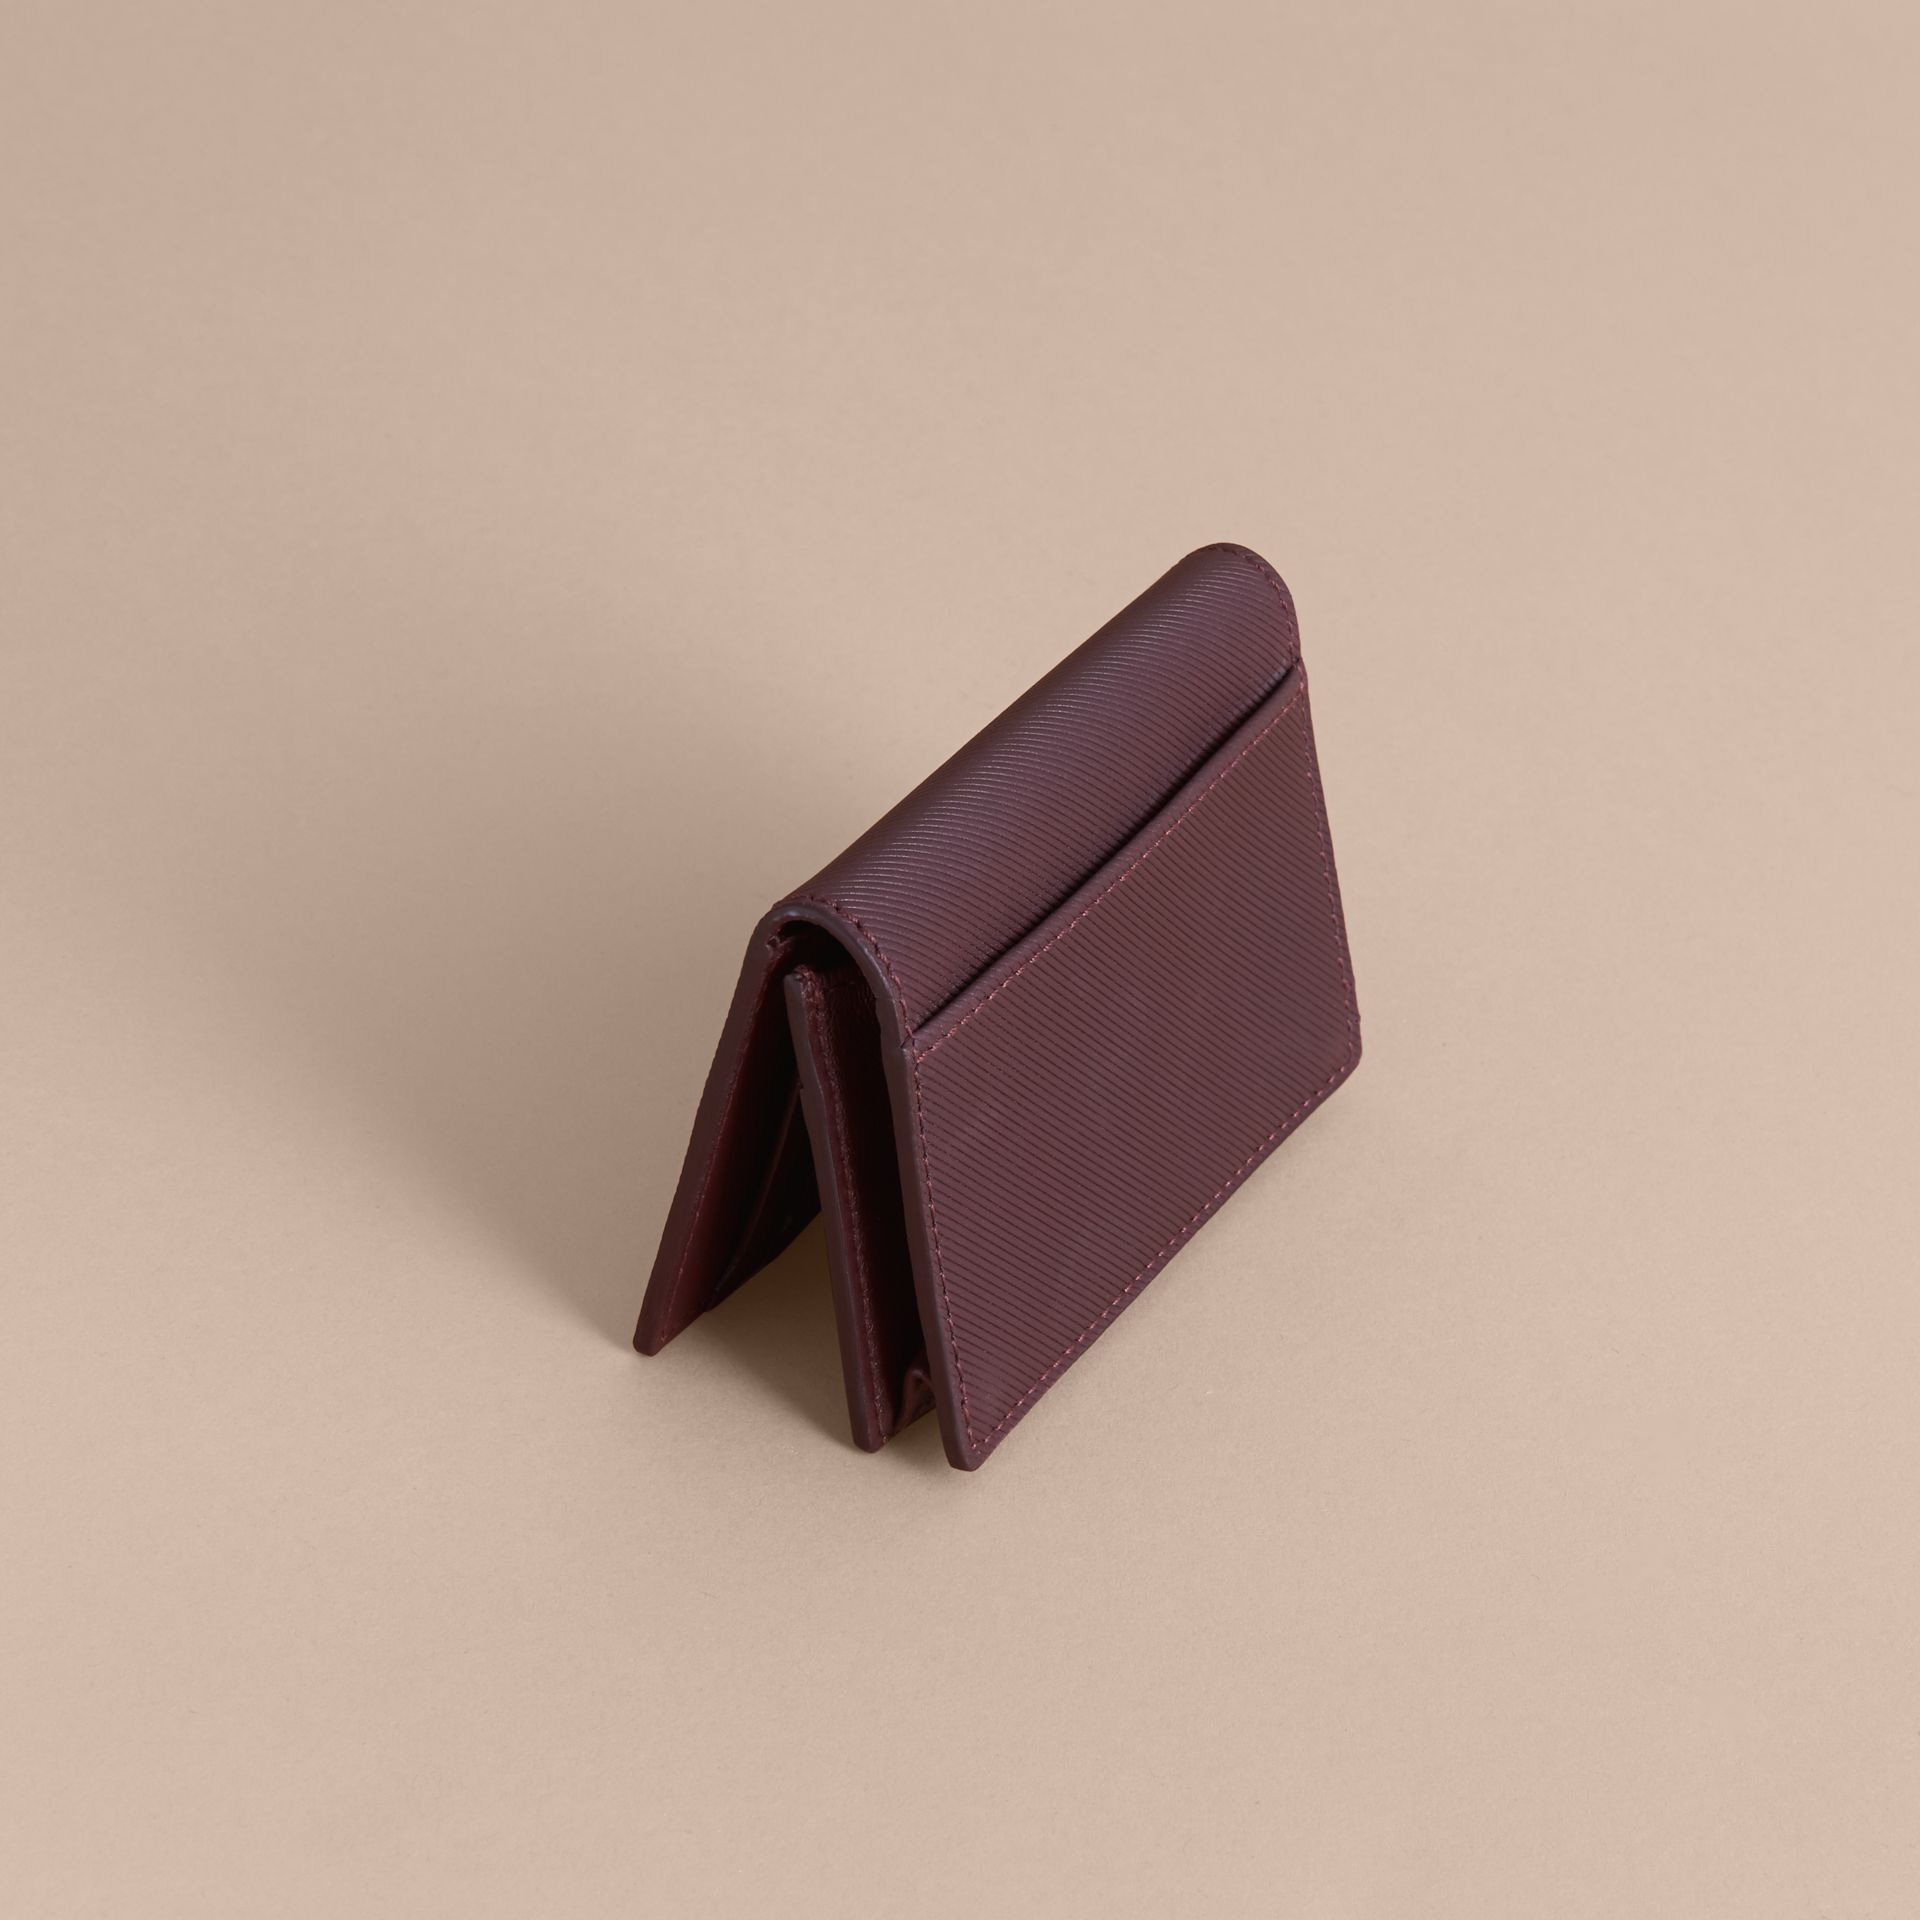 Trench Leather Folding Card Case in Wine - Men | Burberry United Kingdom - gallery image 3